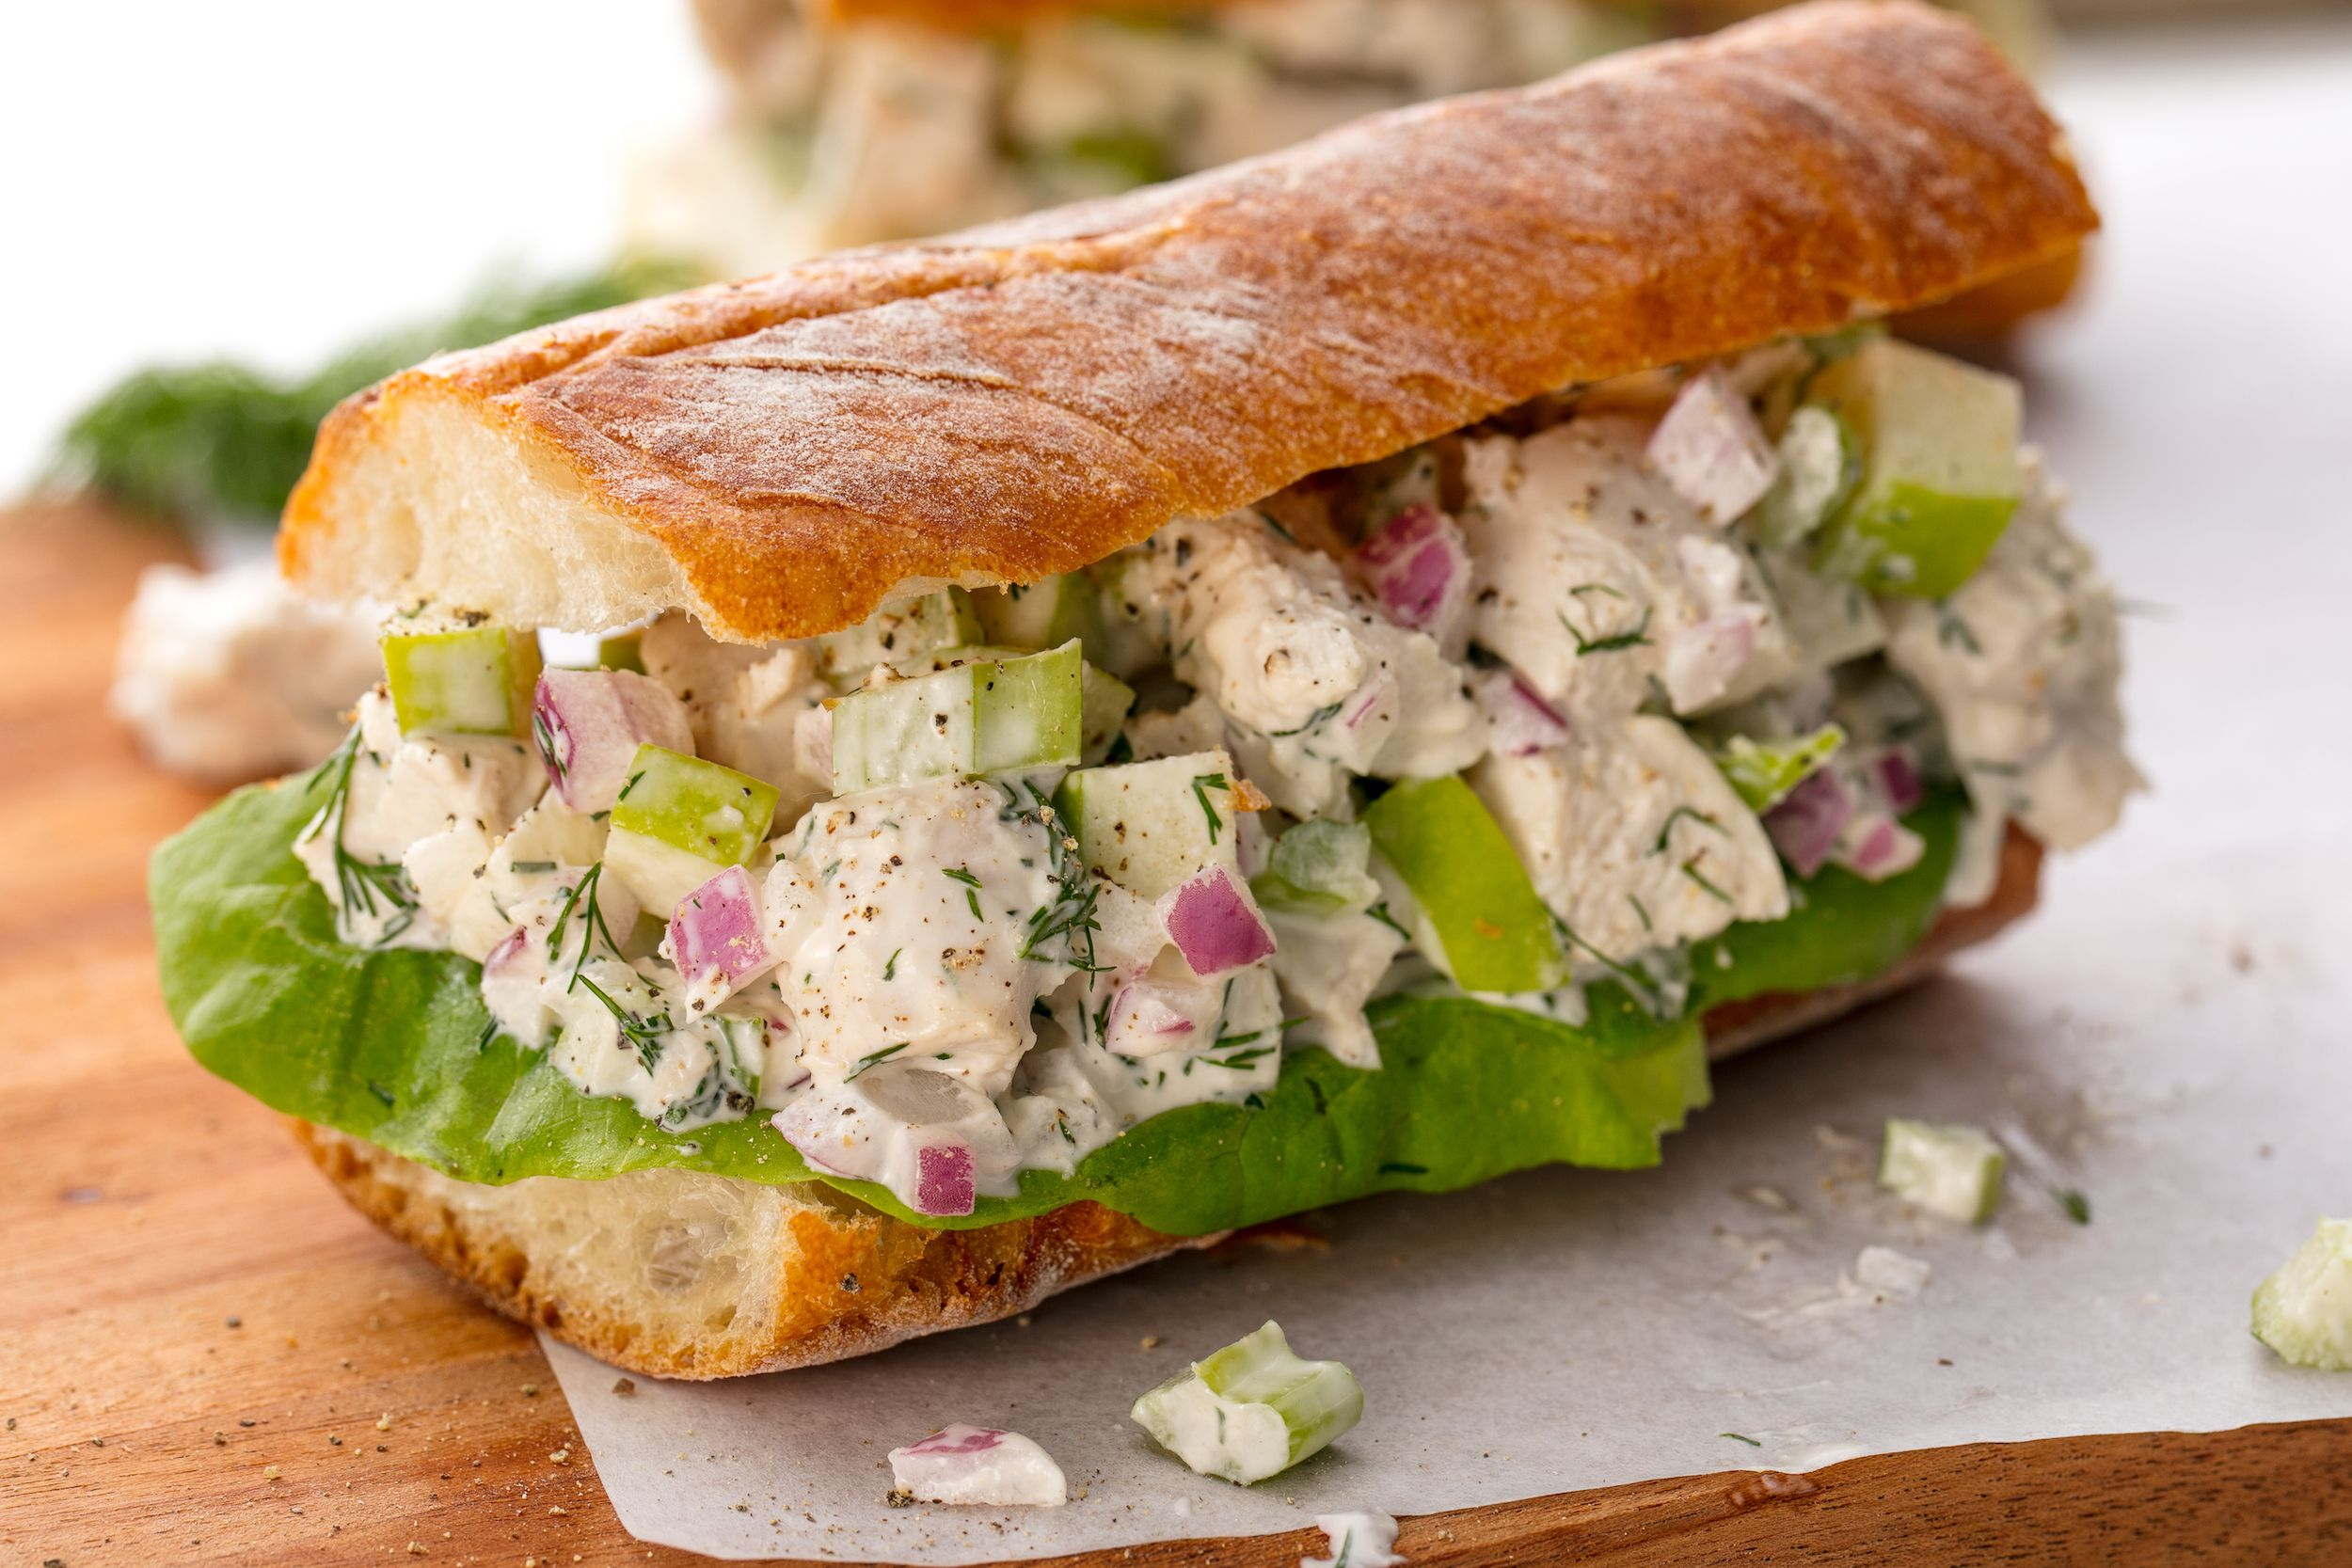 1502305153-chicken-salad-sandwich-delish-1.jpg